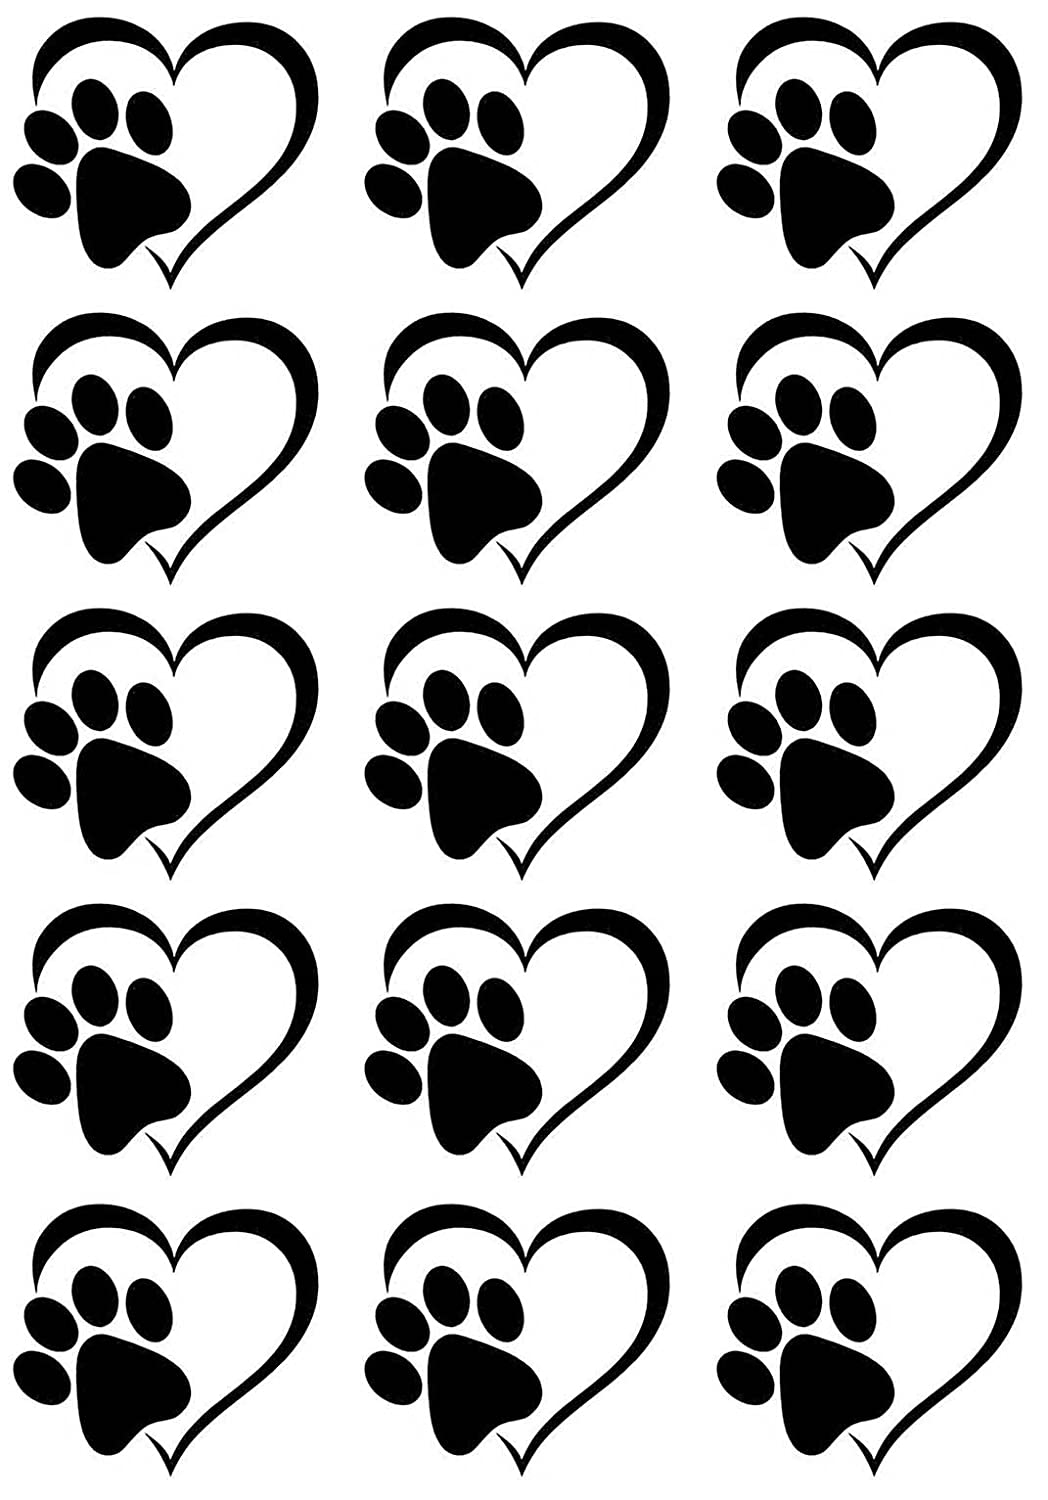 Heart Dog Cat Paw Print Black 17CC795 Fused Glass Decals Captive Decals